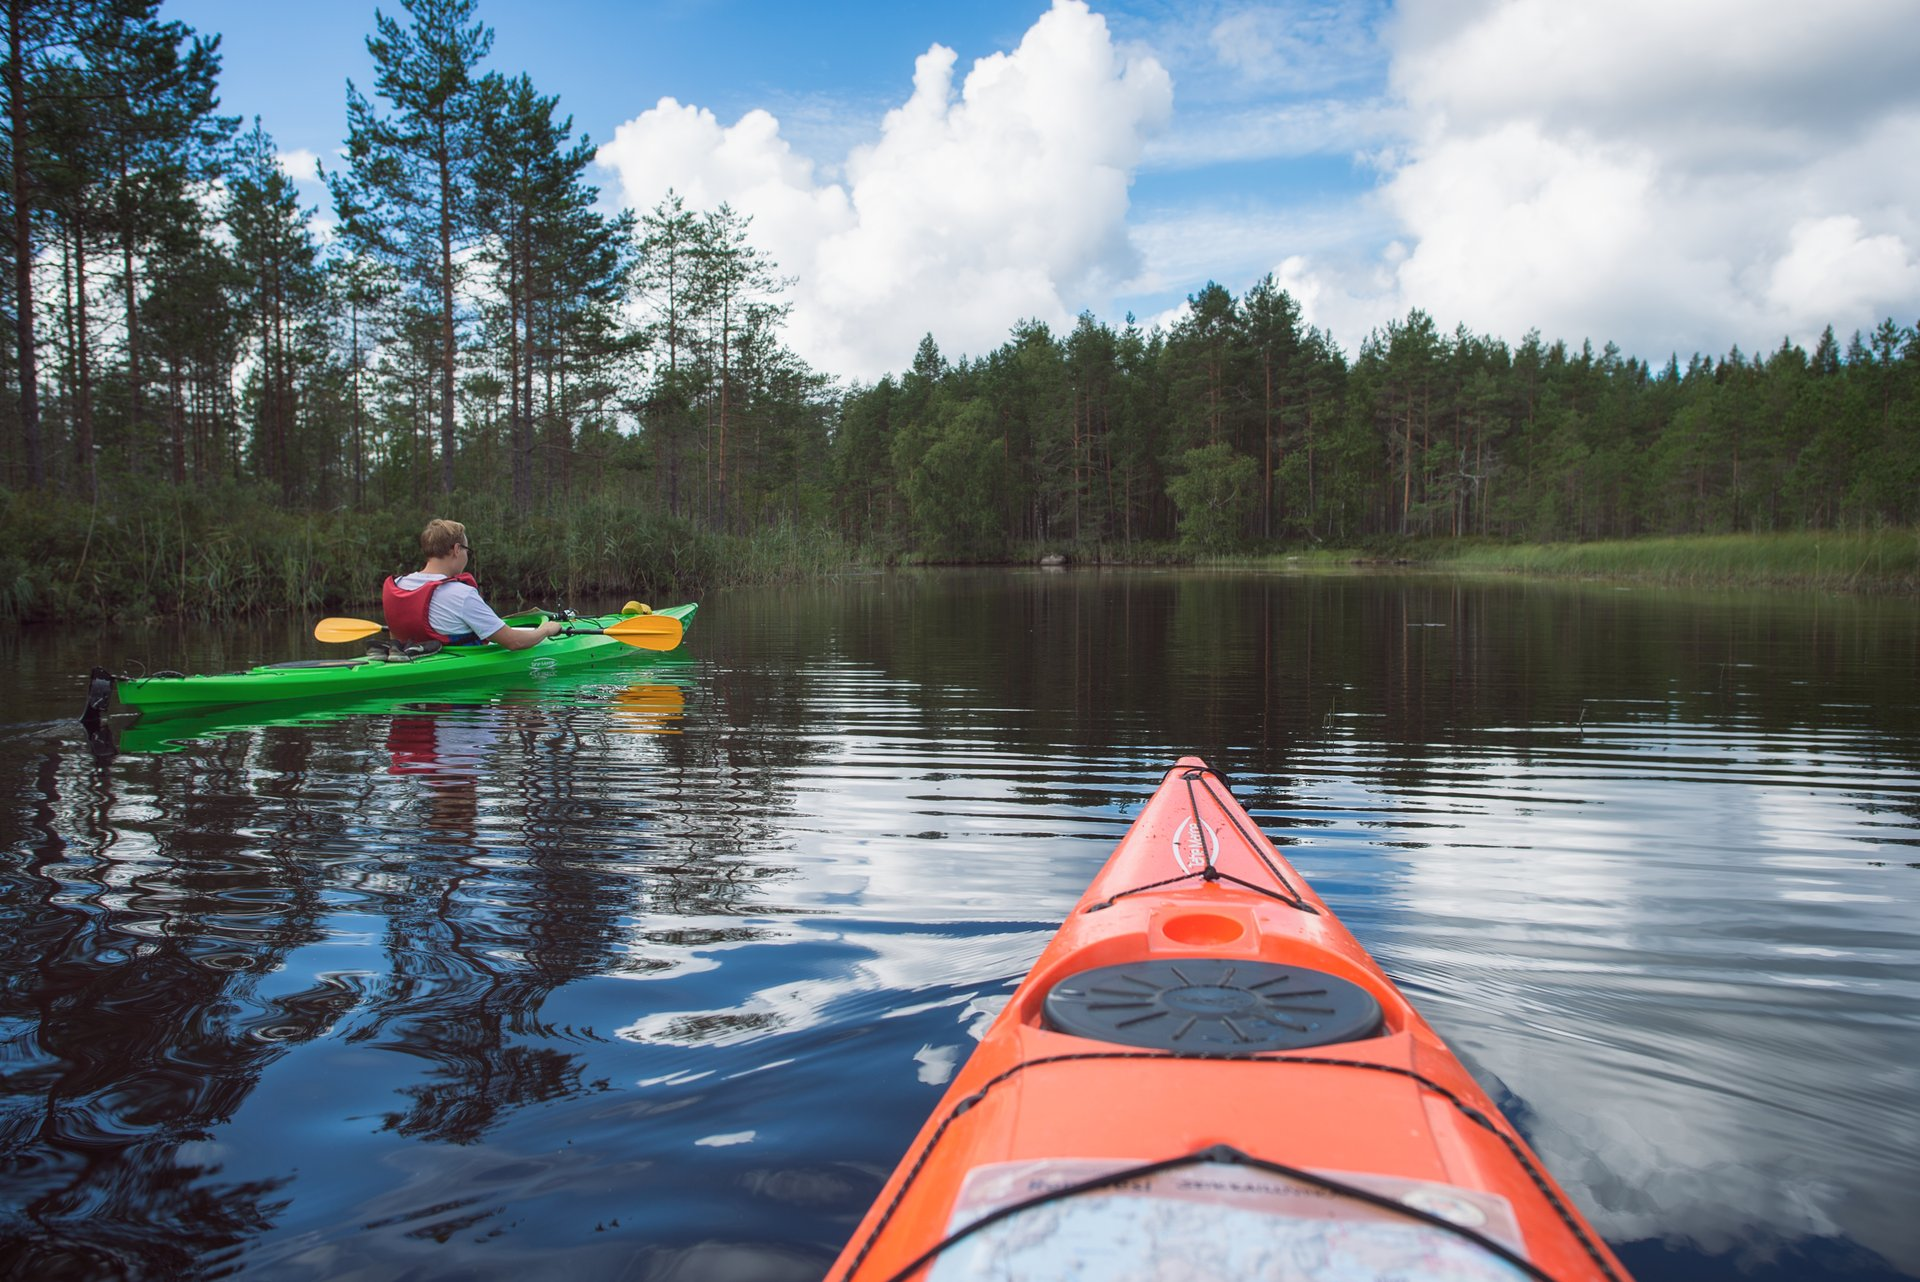 Canoeing & Kayaking in Finland 2020 - Best Time